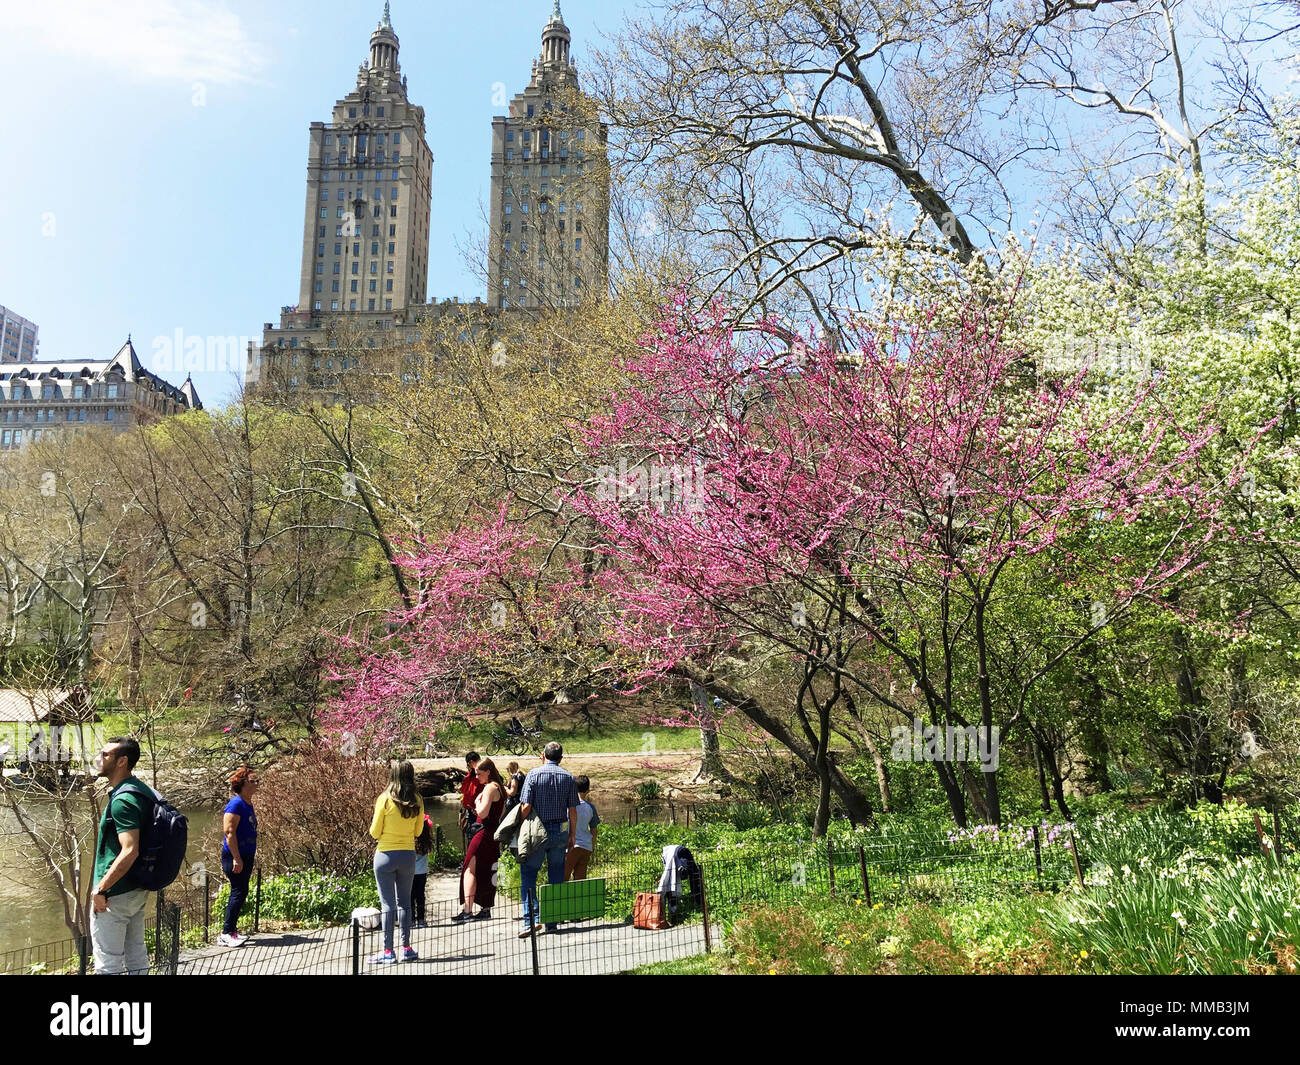 Blooming springtime trees on Hernshead promontory in central park attract tourists, NYC, USA - Stock Image